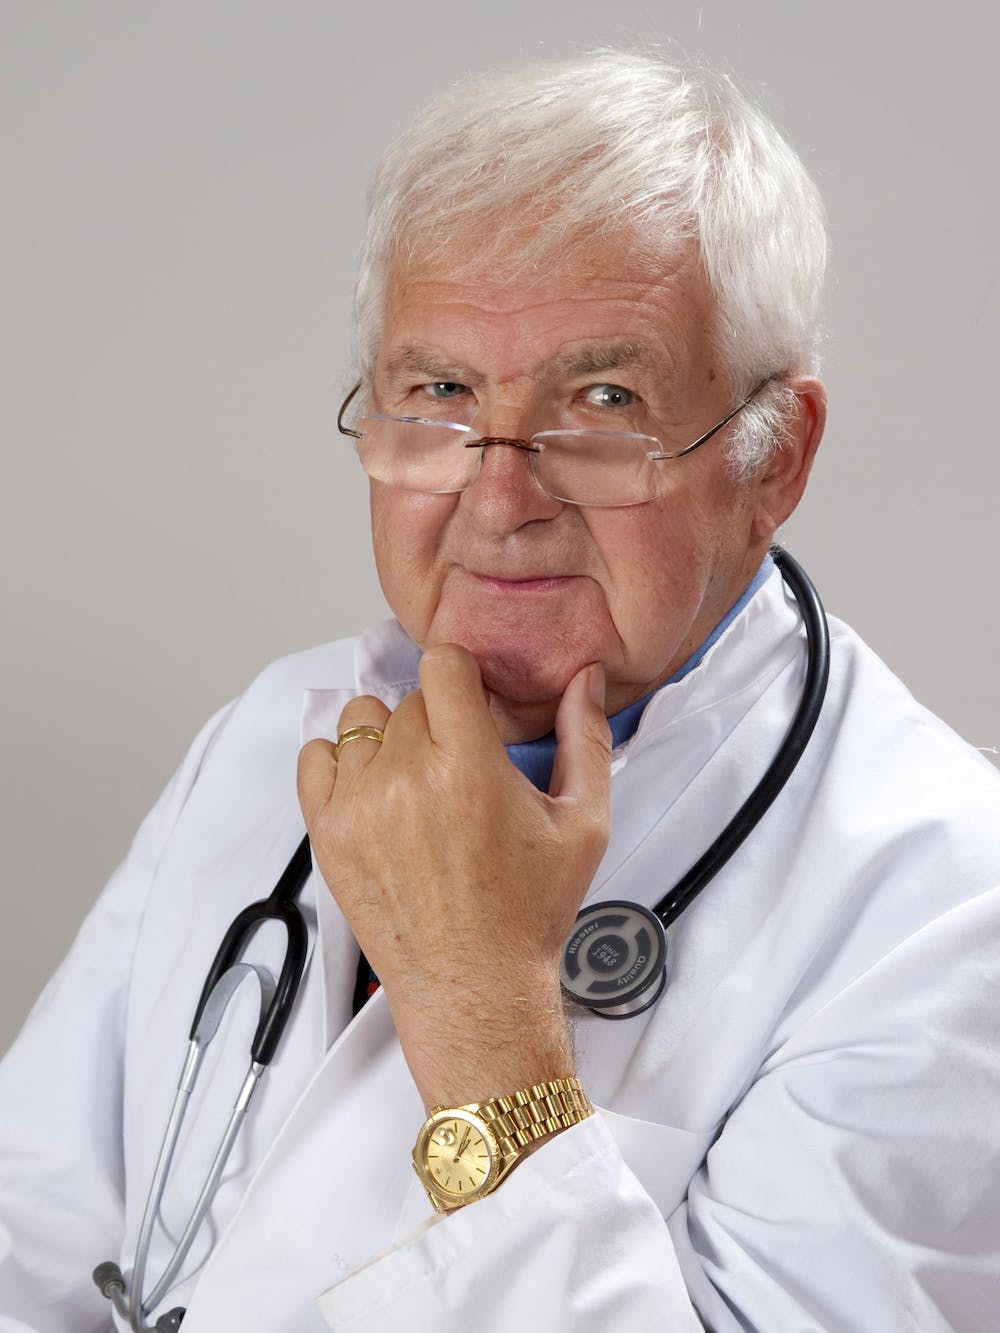 A doctor carrying stethoscope. | Photo: Pexels